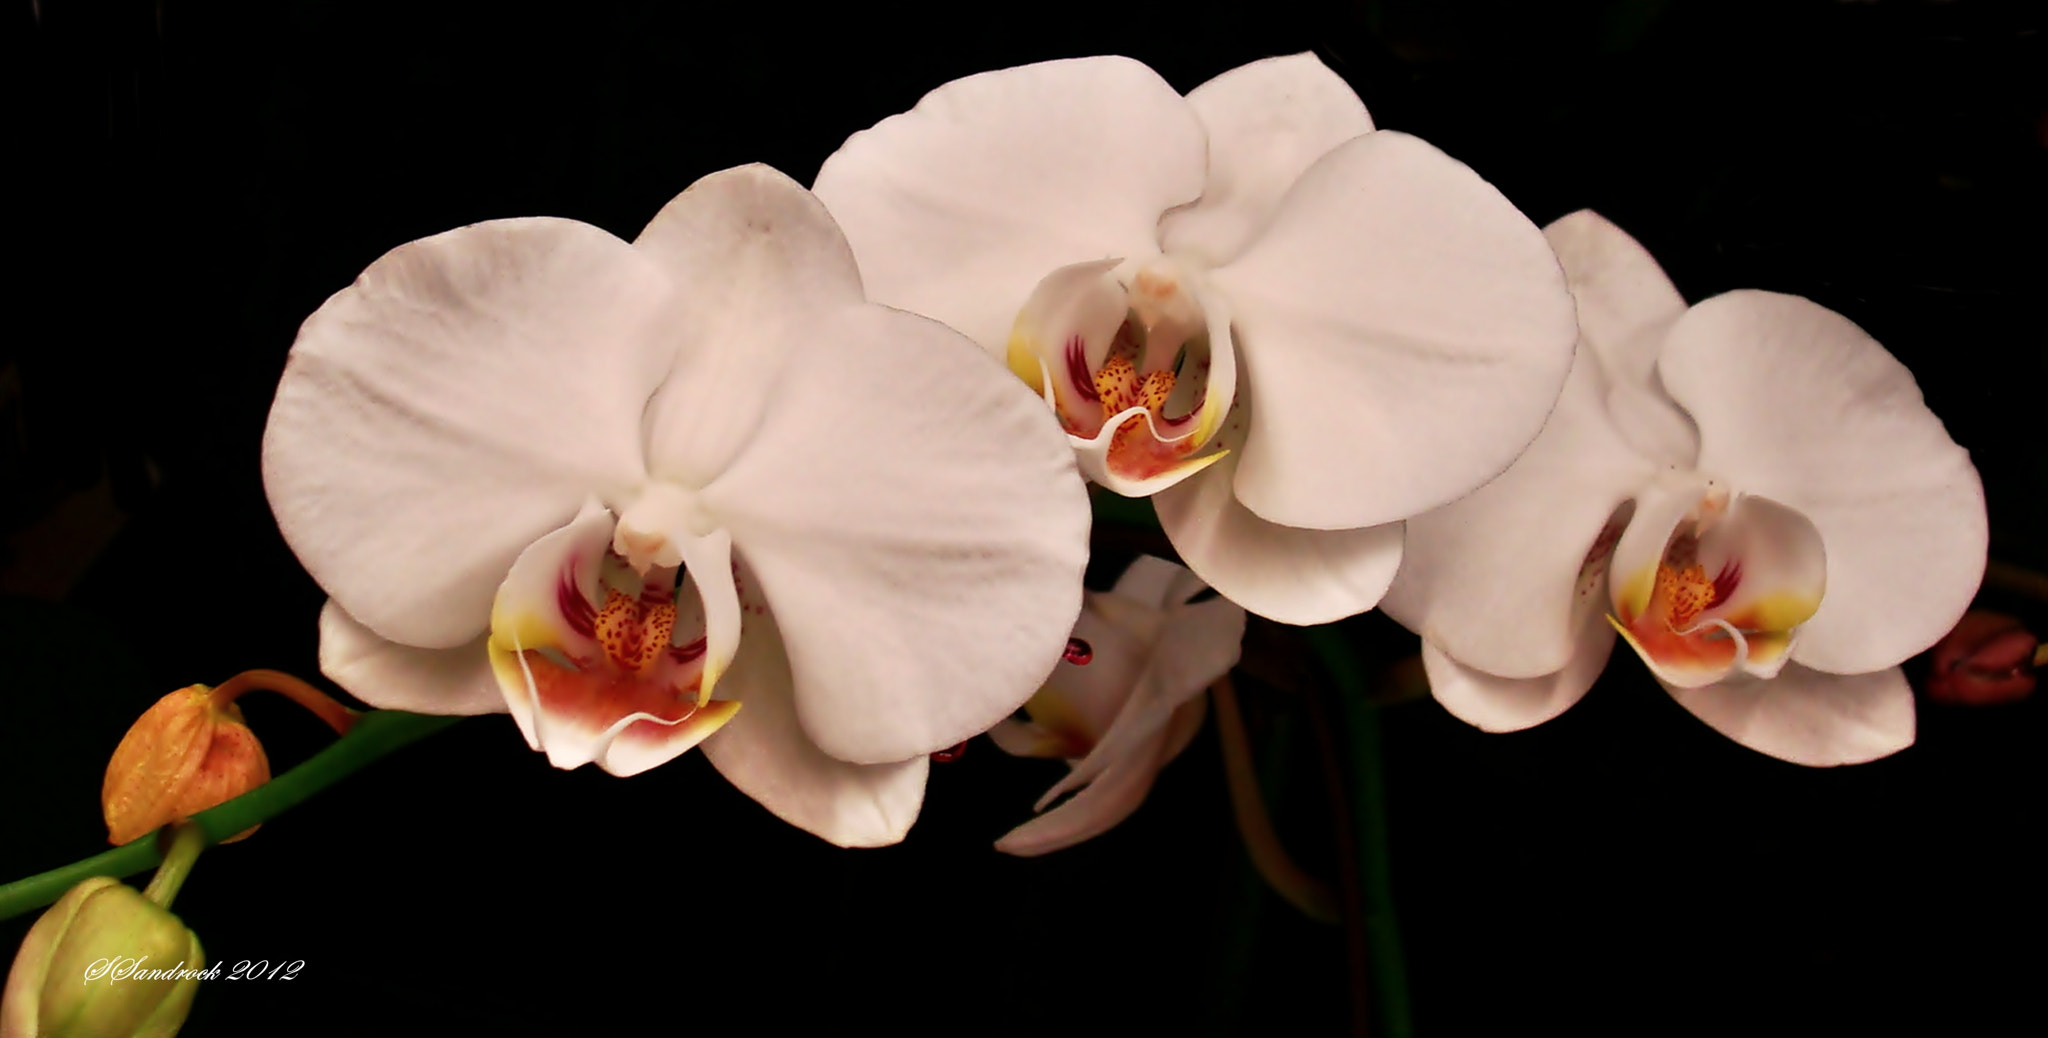 Photograph The Orchid by Silvia Sandrock on 500px